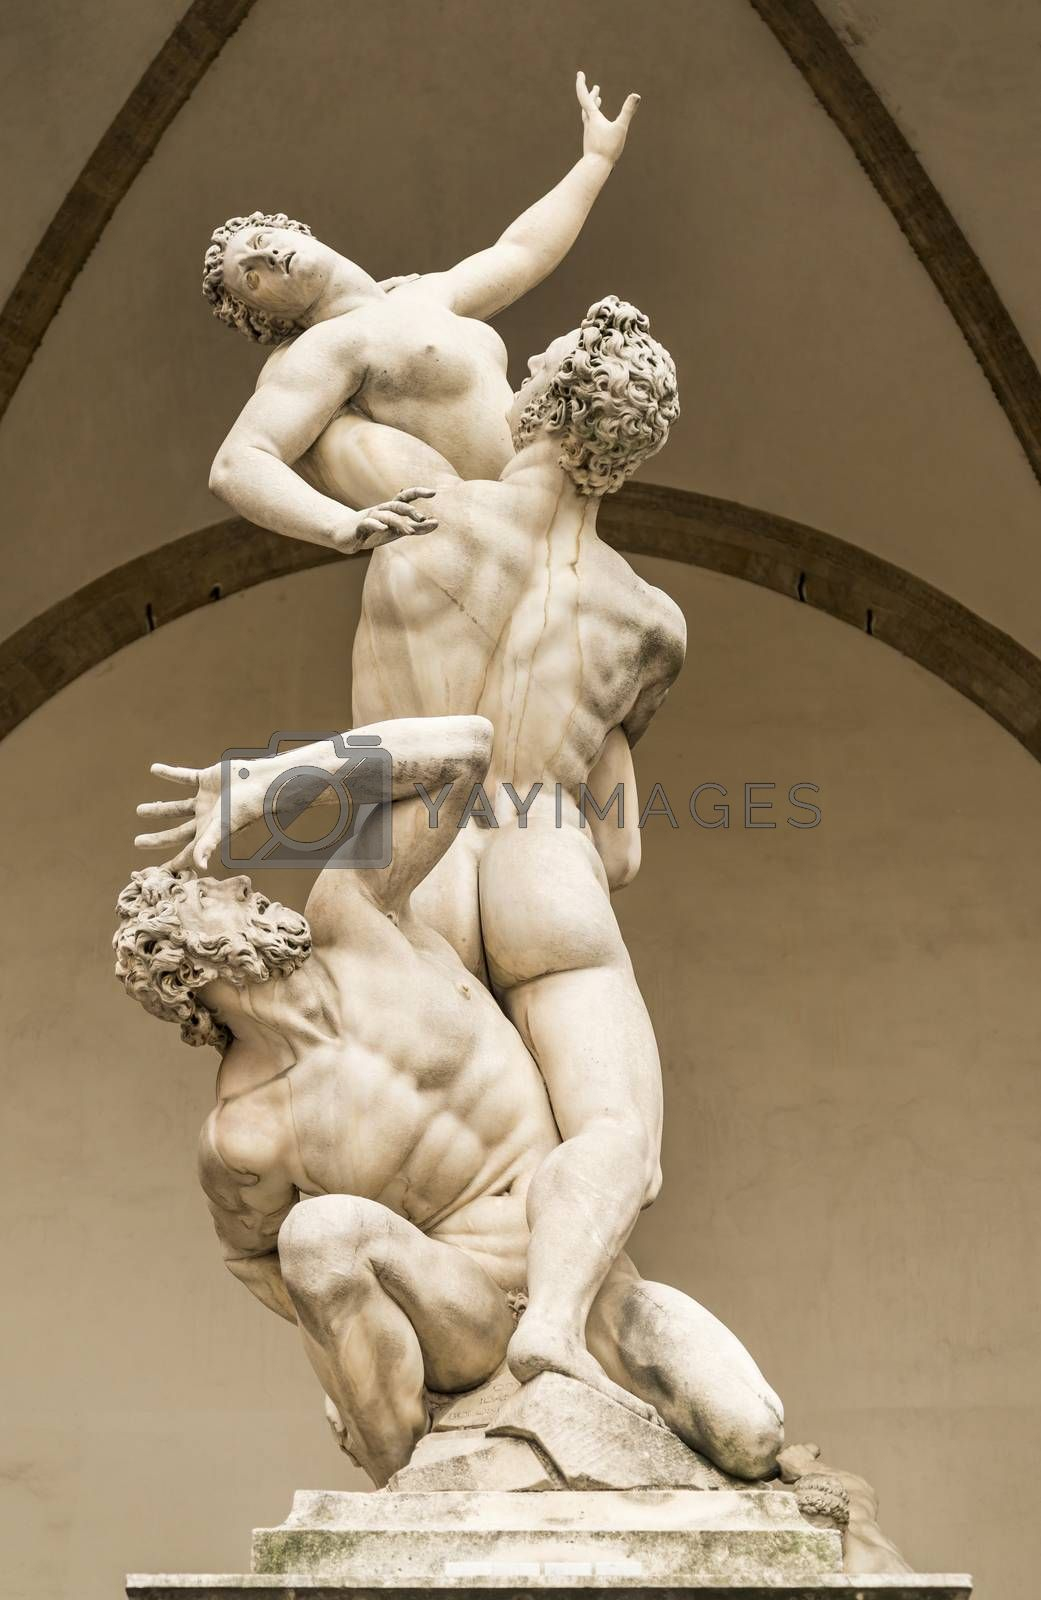 Statue of the rape of the Sabine women in Florence, Italy